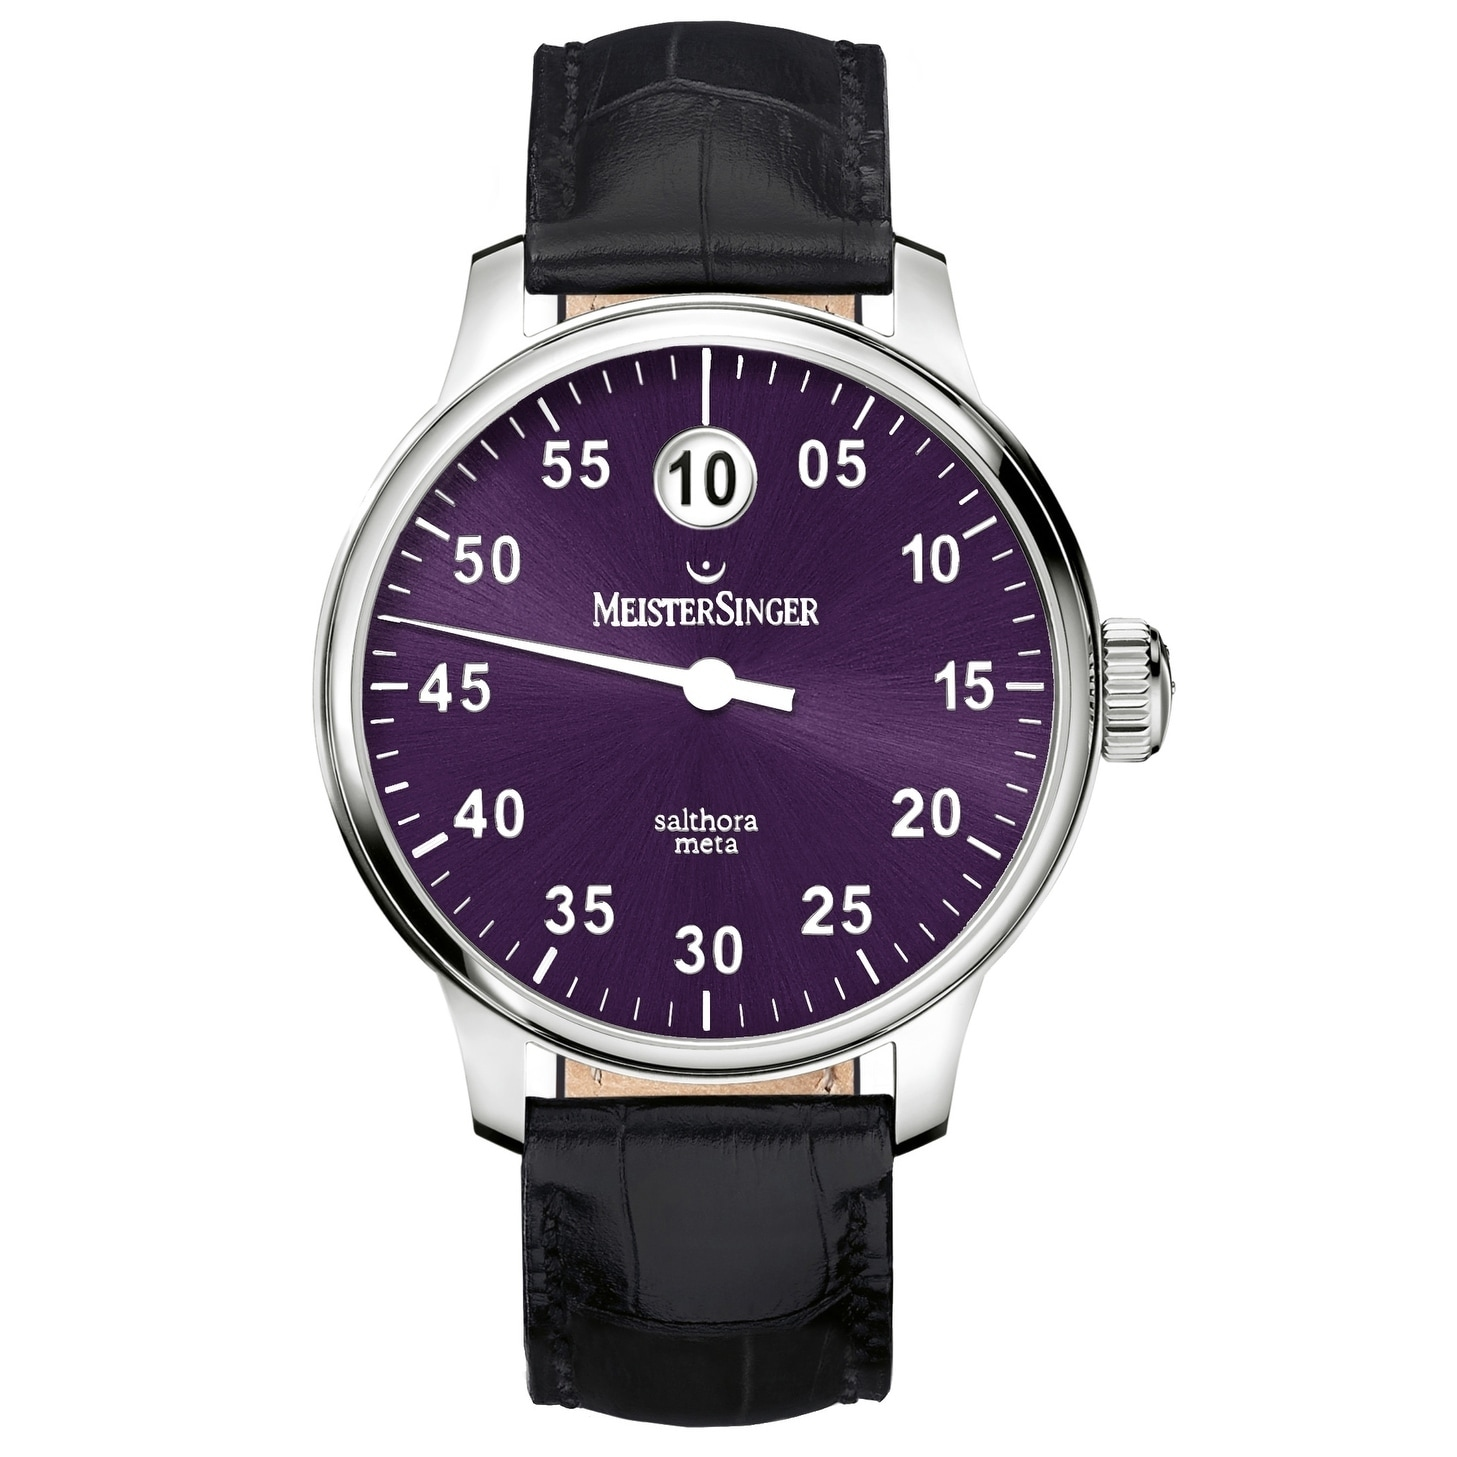 269c0cc28 Shop MeisterSinger Men's SAM9010 'Salthora Meta' Purple Dial Black Leather  Strap Jumping Hour Automatic Watch - Free Shipping Today - Overstock -  24183789